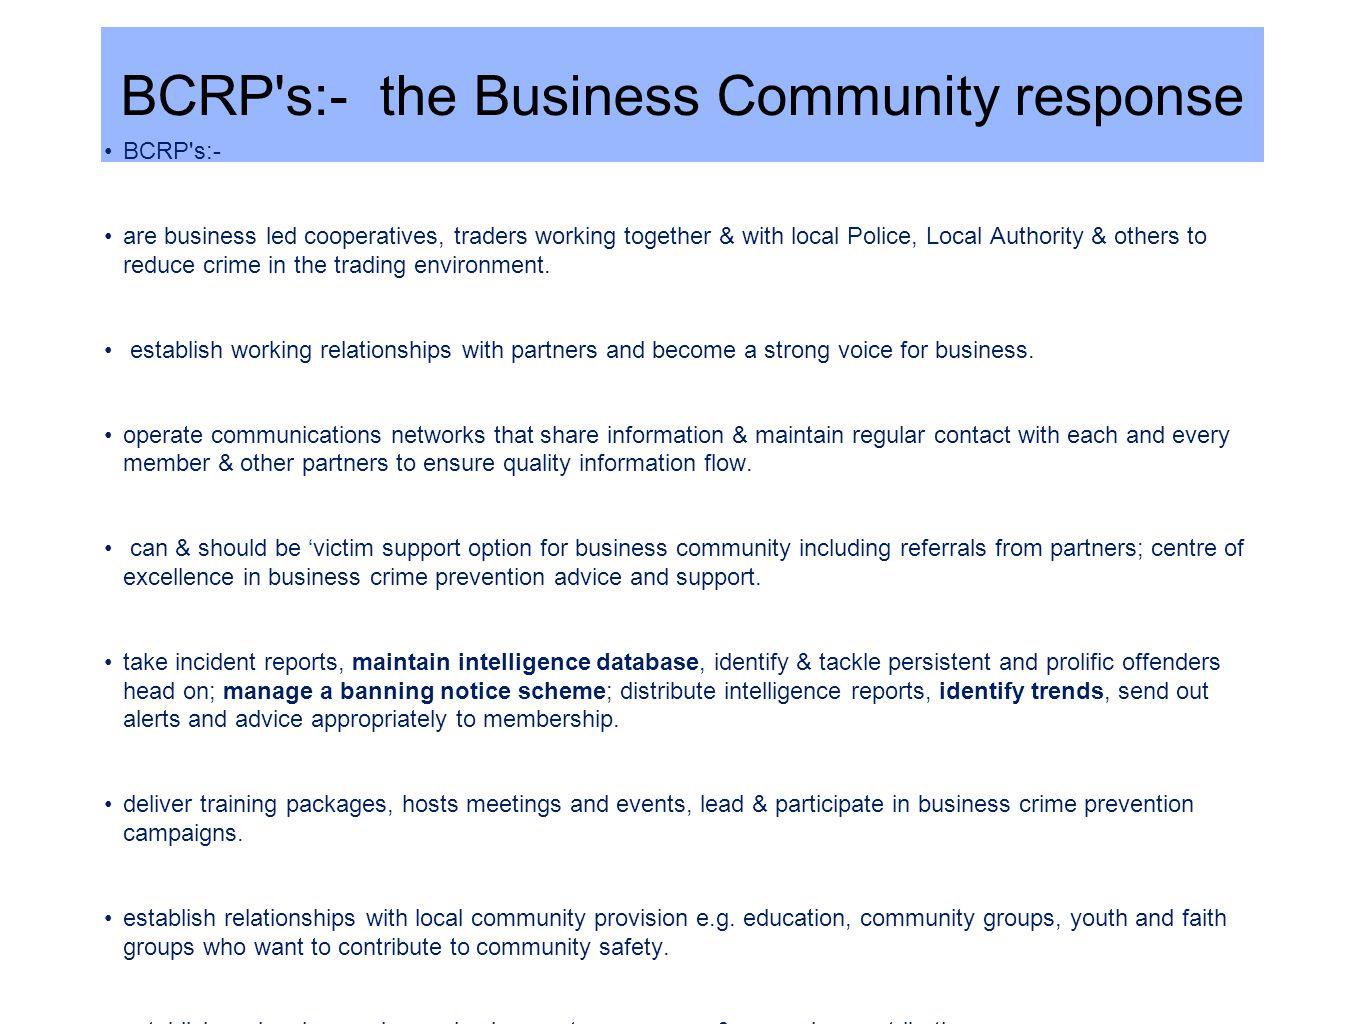 BCRP s:- the Business Community response